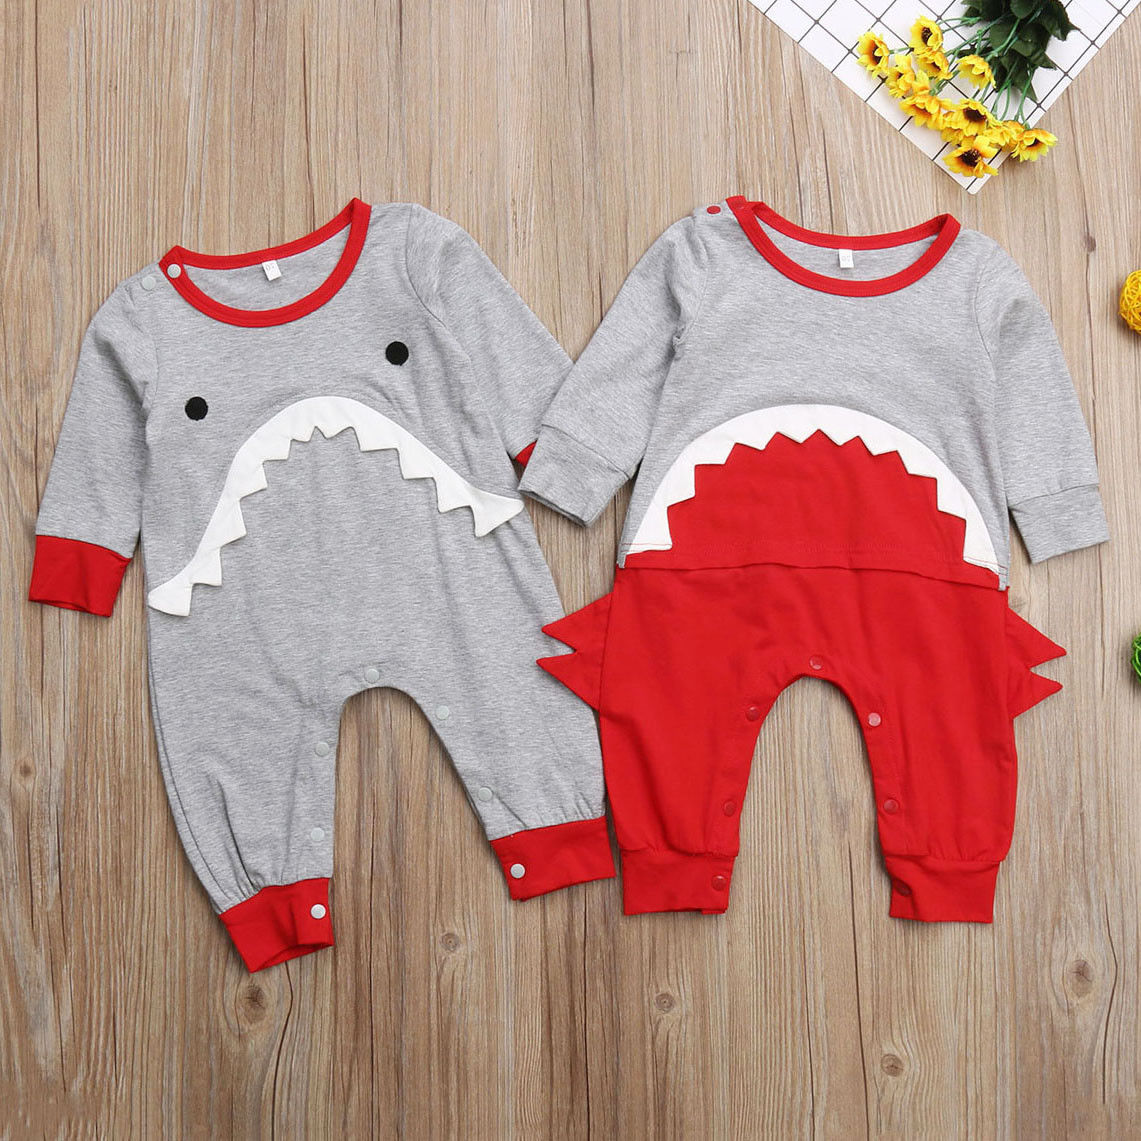 Babies Cotton Clothes Toddler Baby Boy Shark One-piece Romper  Jumpsuit  Clothing  Outfits 0-24M